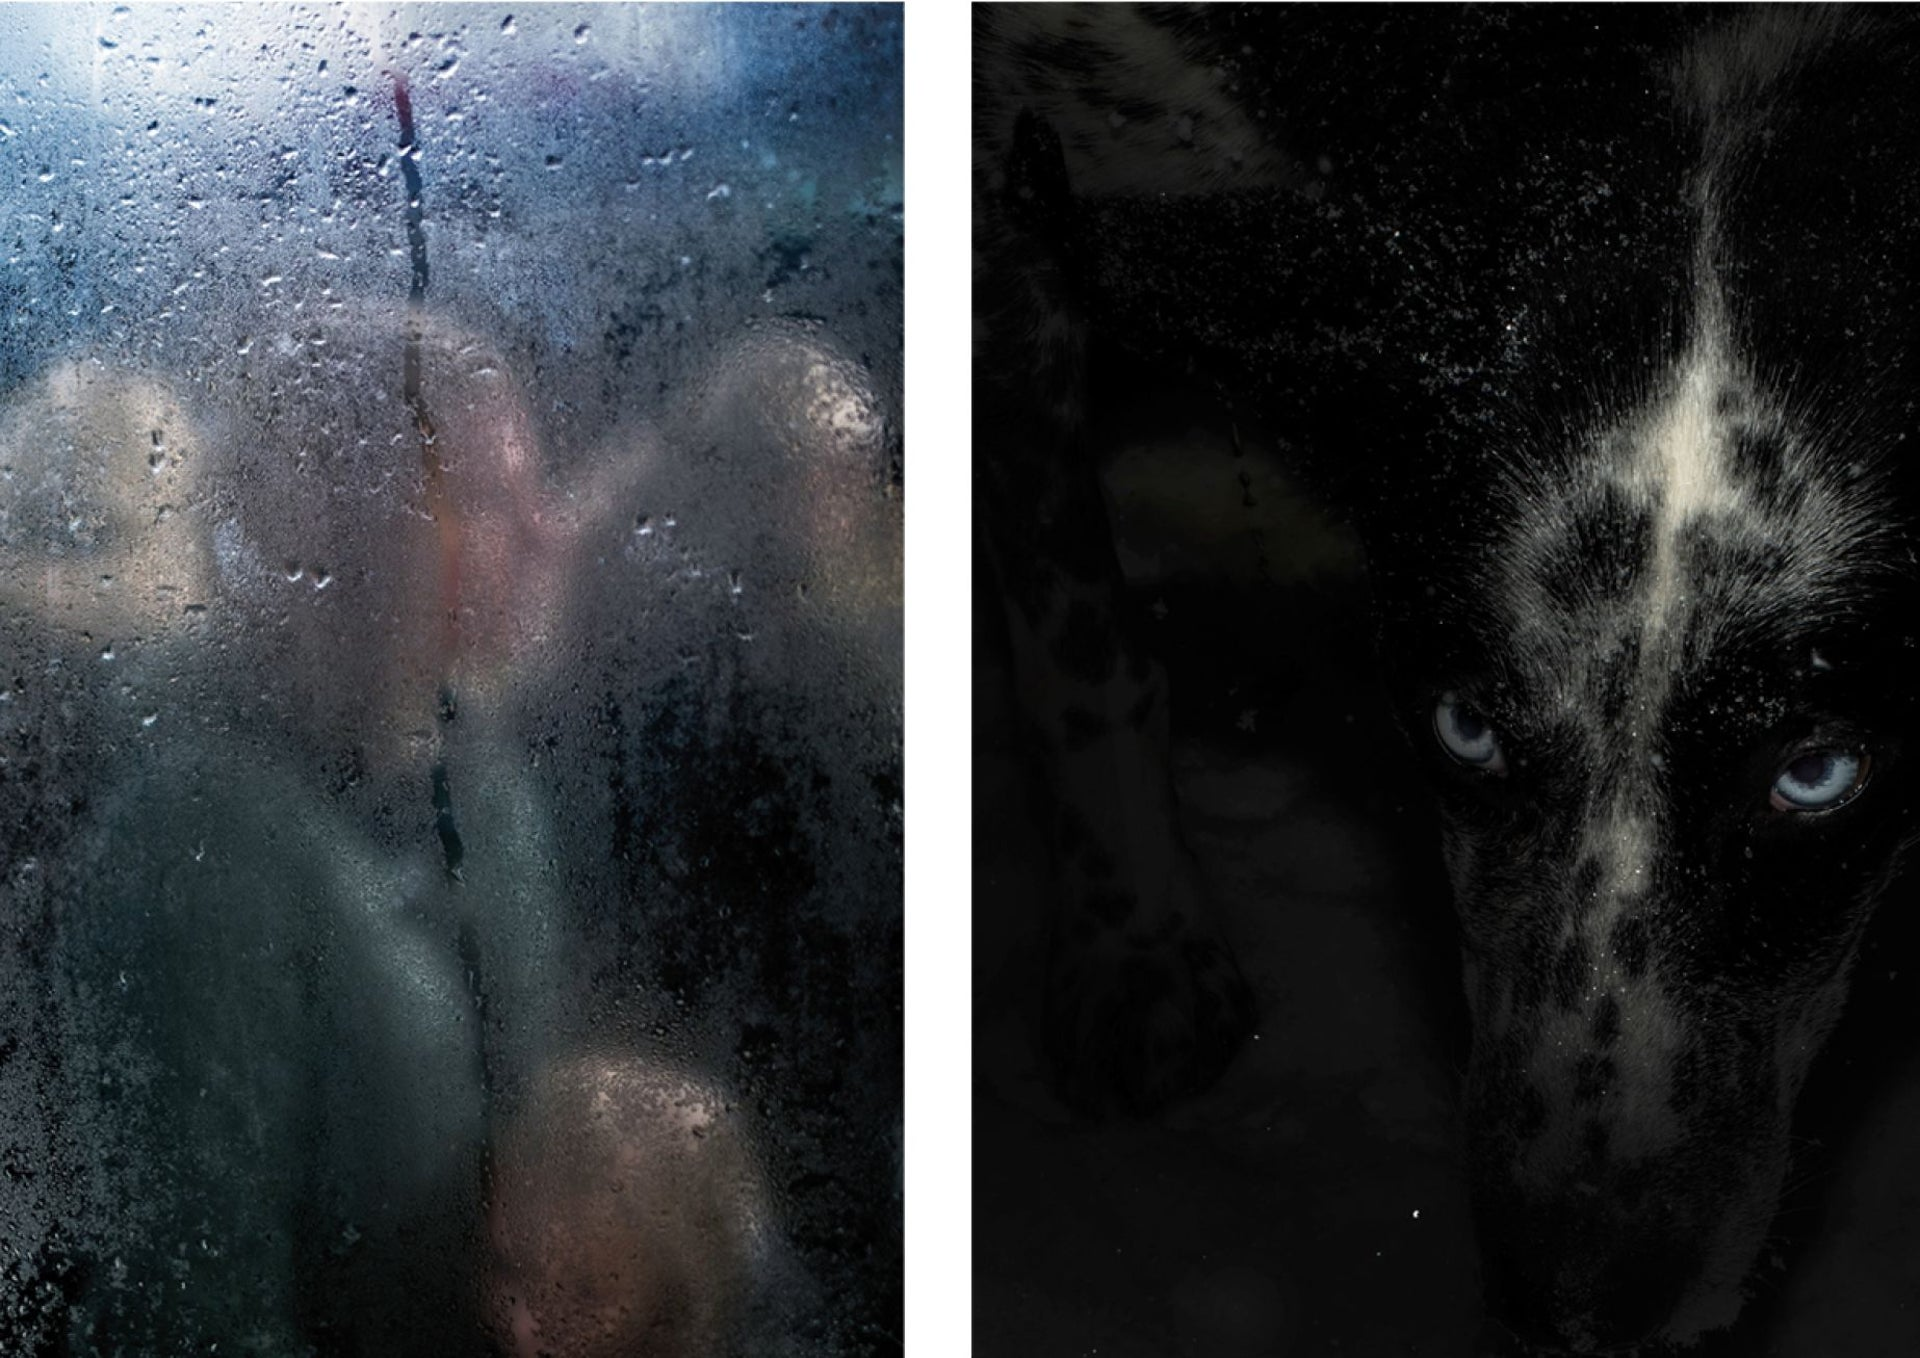 On the left a woman is seen through steam covered window and on the right a close up photo of a dog's bright blue eye.